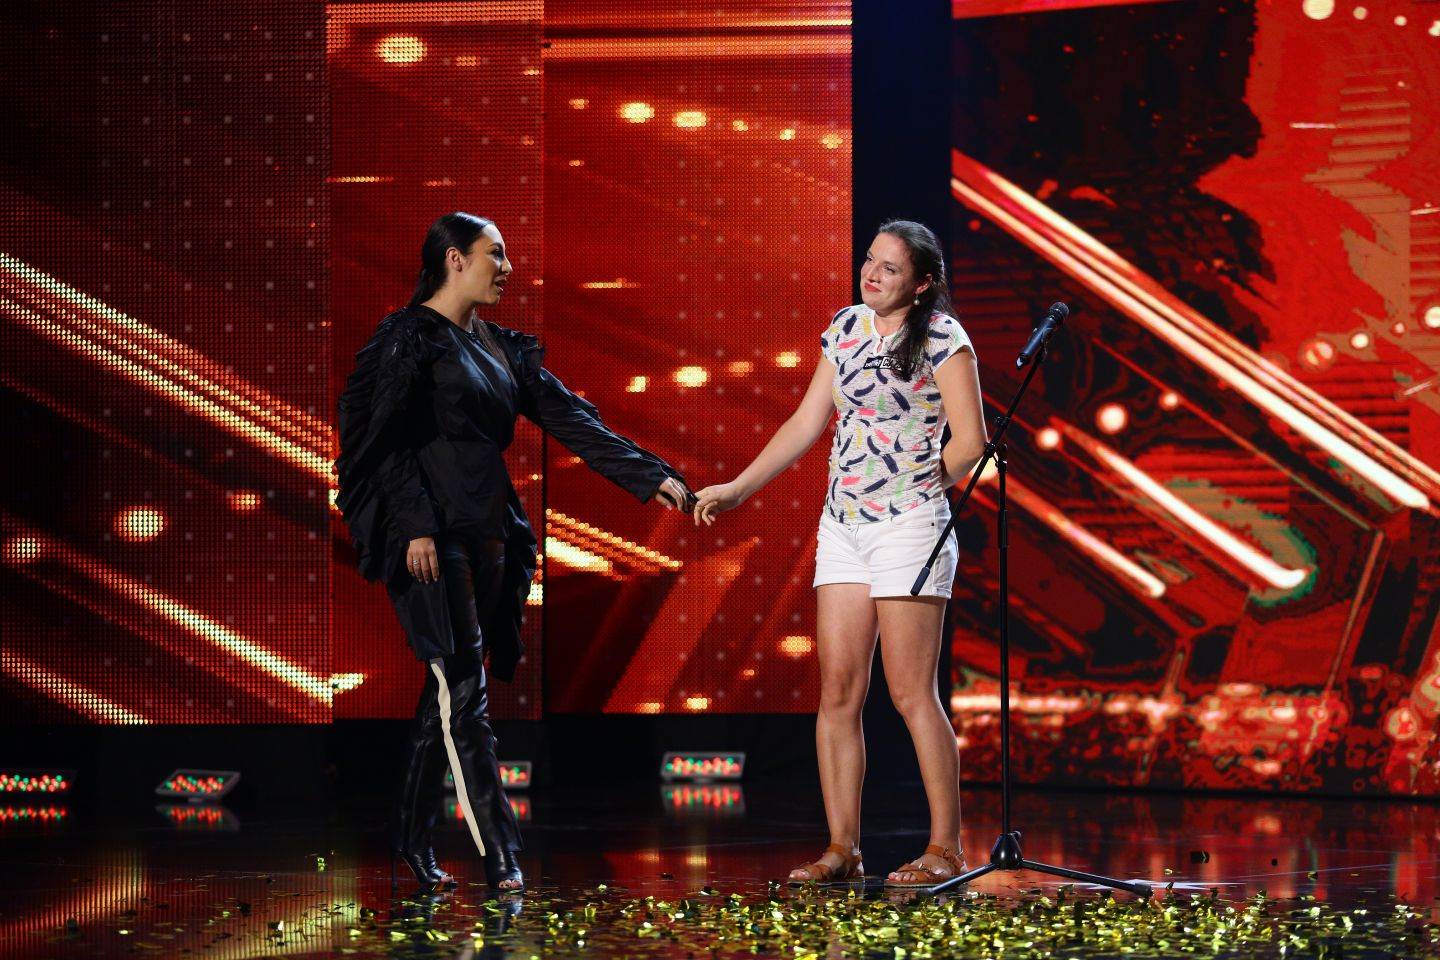 Romanii au talent.Paula Rad, femeie de serviciu care a luat golden buzz (video)